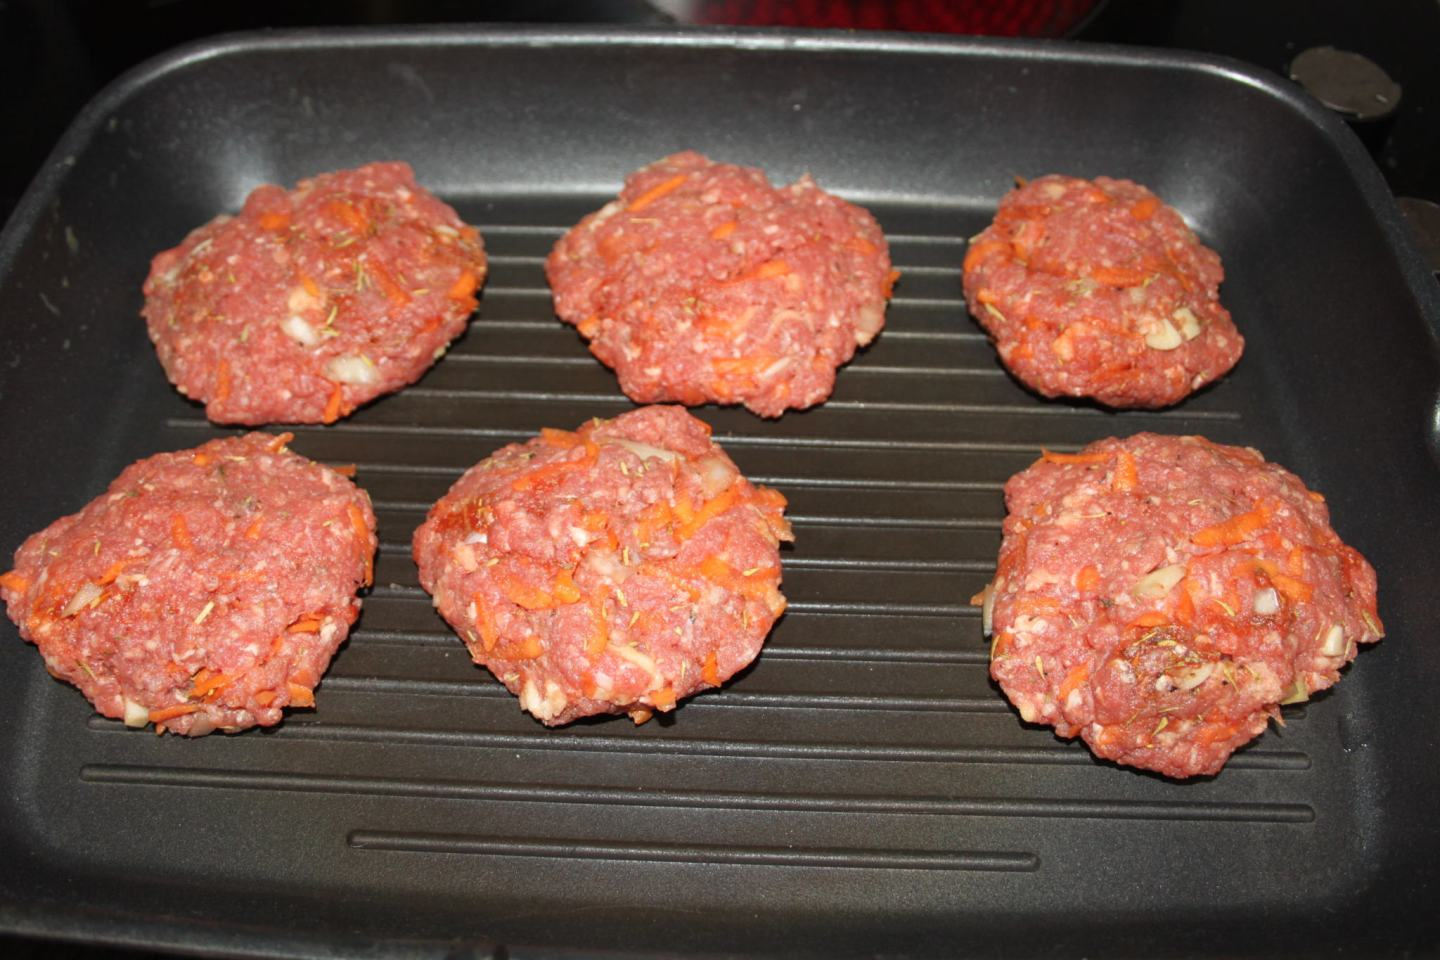 My Healthy Homemade Burgers #MeatMatters Challenge